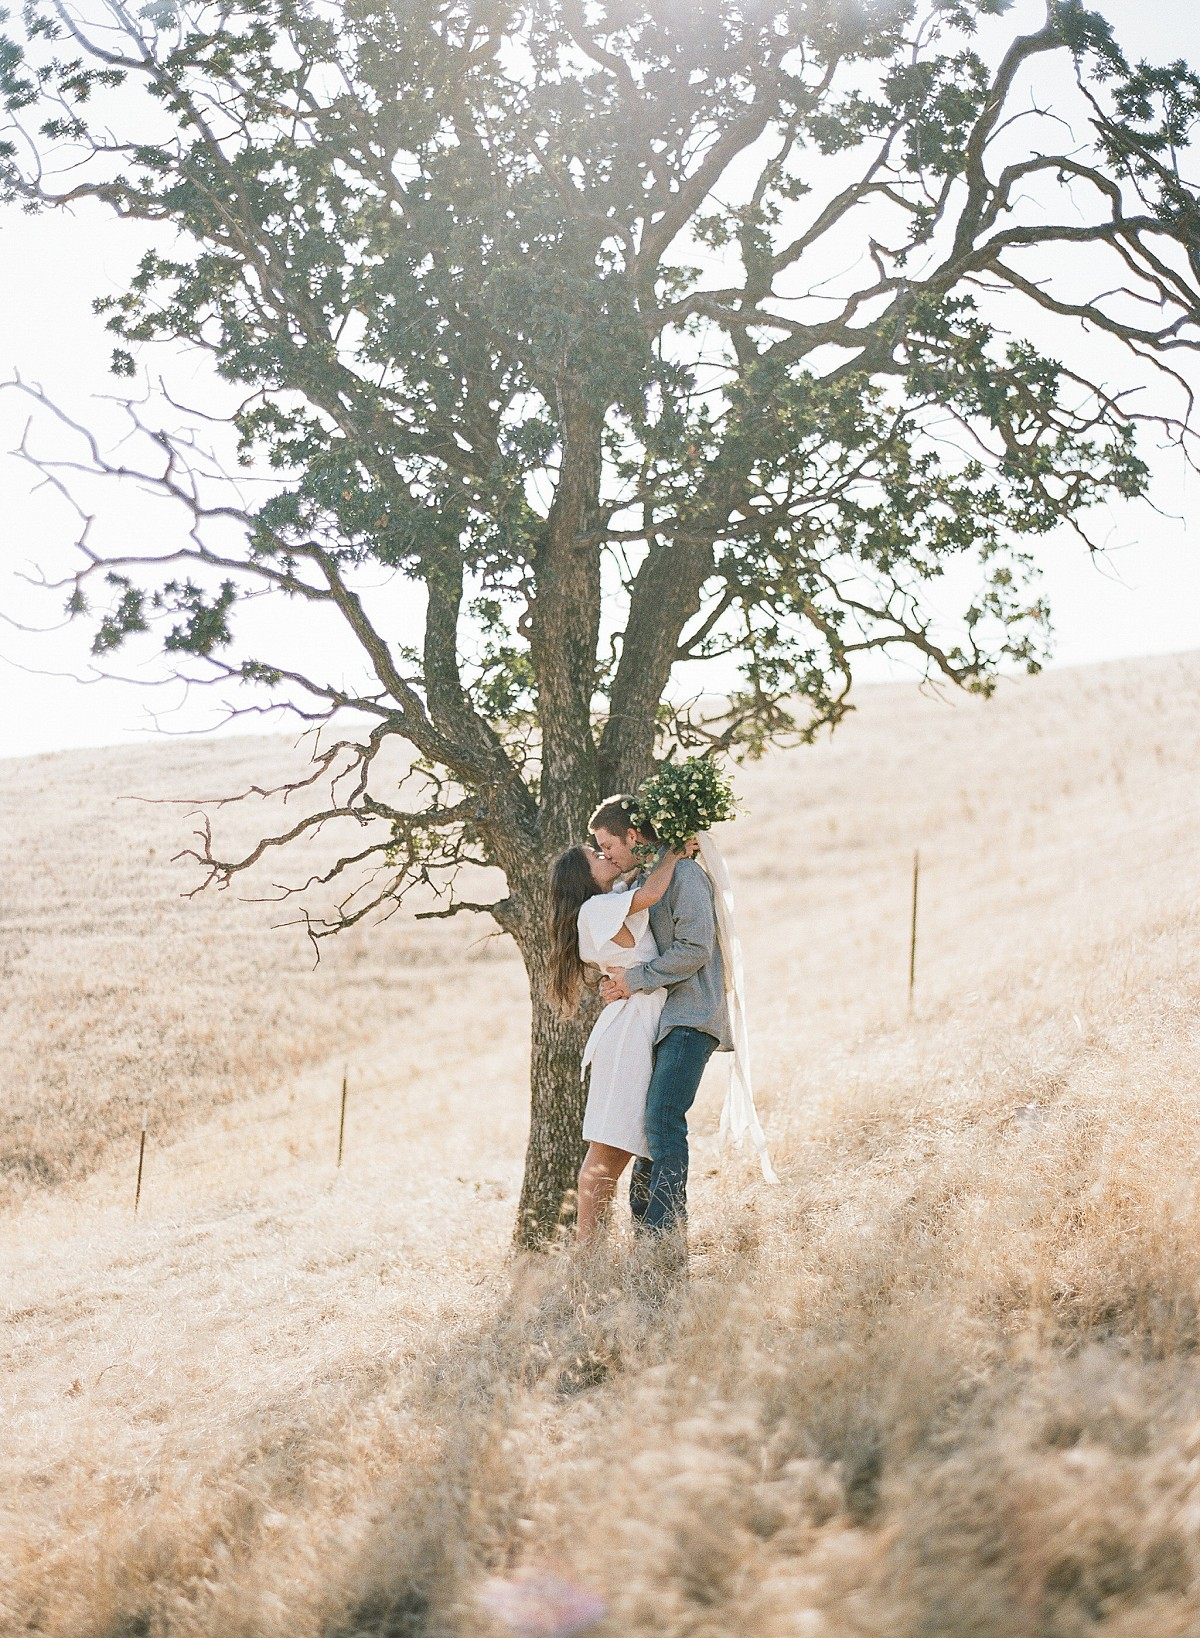 Lifestyle Engagement Session in Southern California